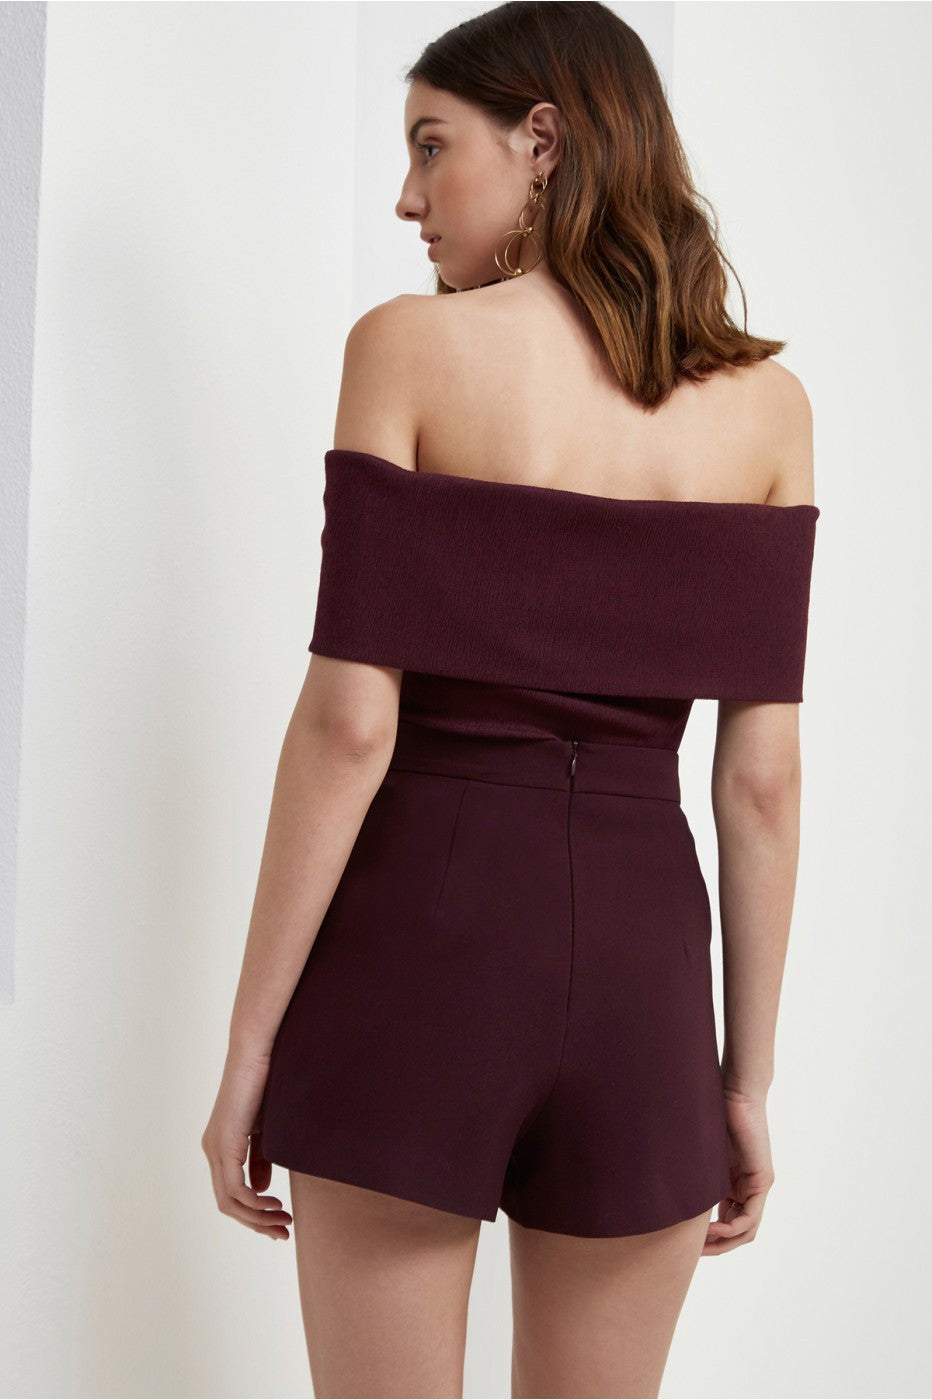 Interlude Off Shoulder Top in Aubergine - Sallyrose